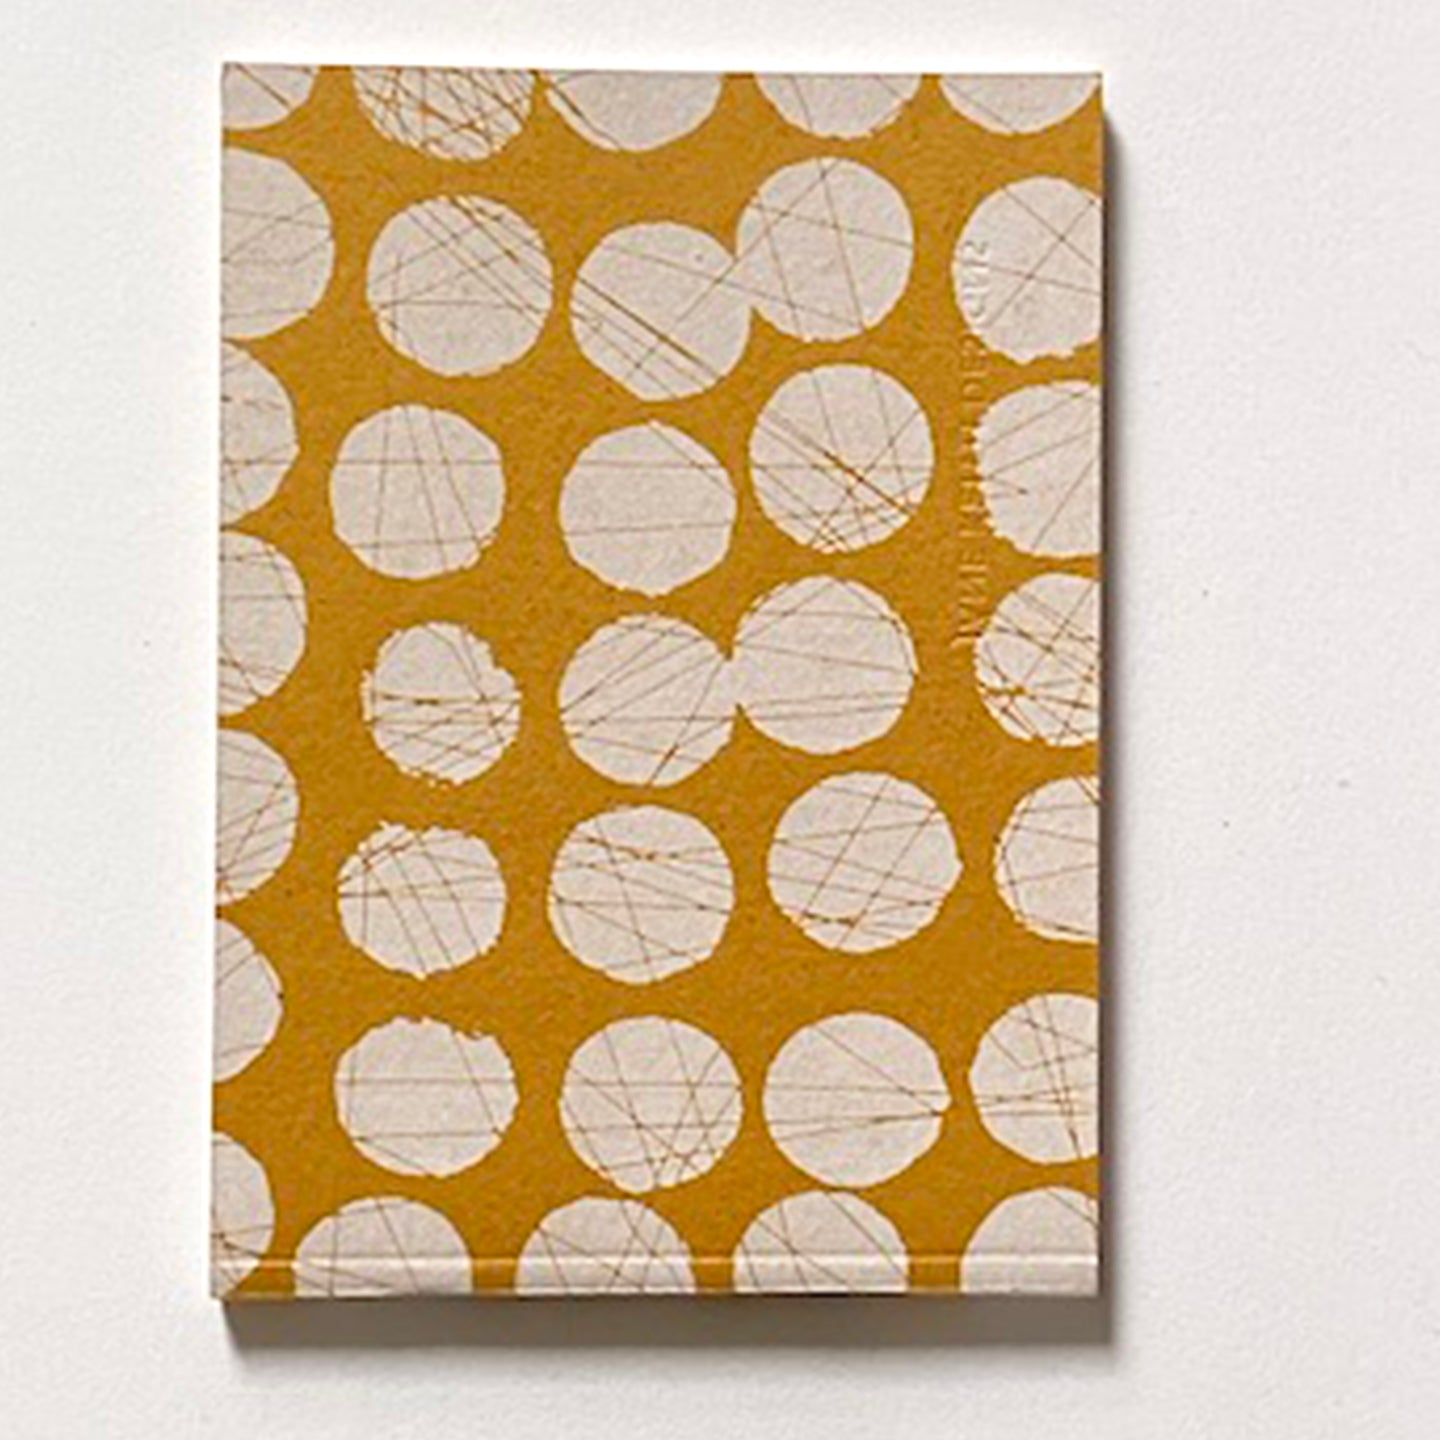 'Scratched' Hand Printed A6 note book